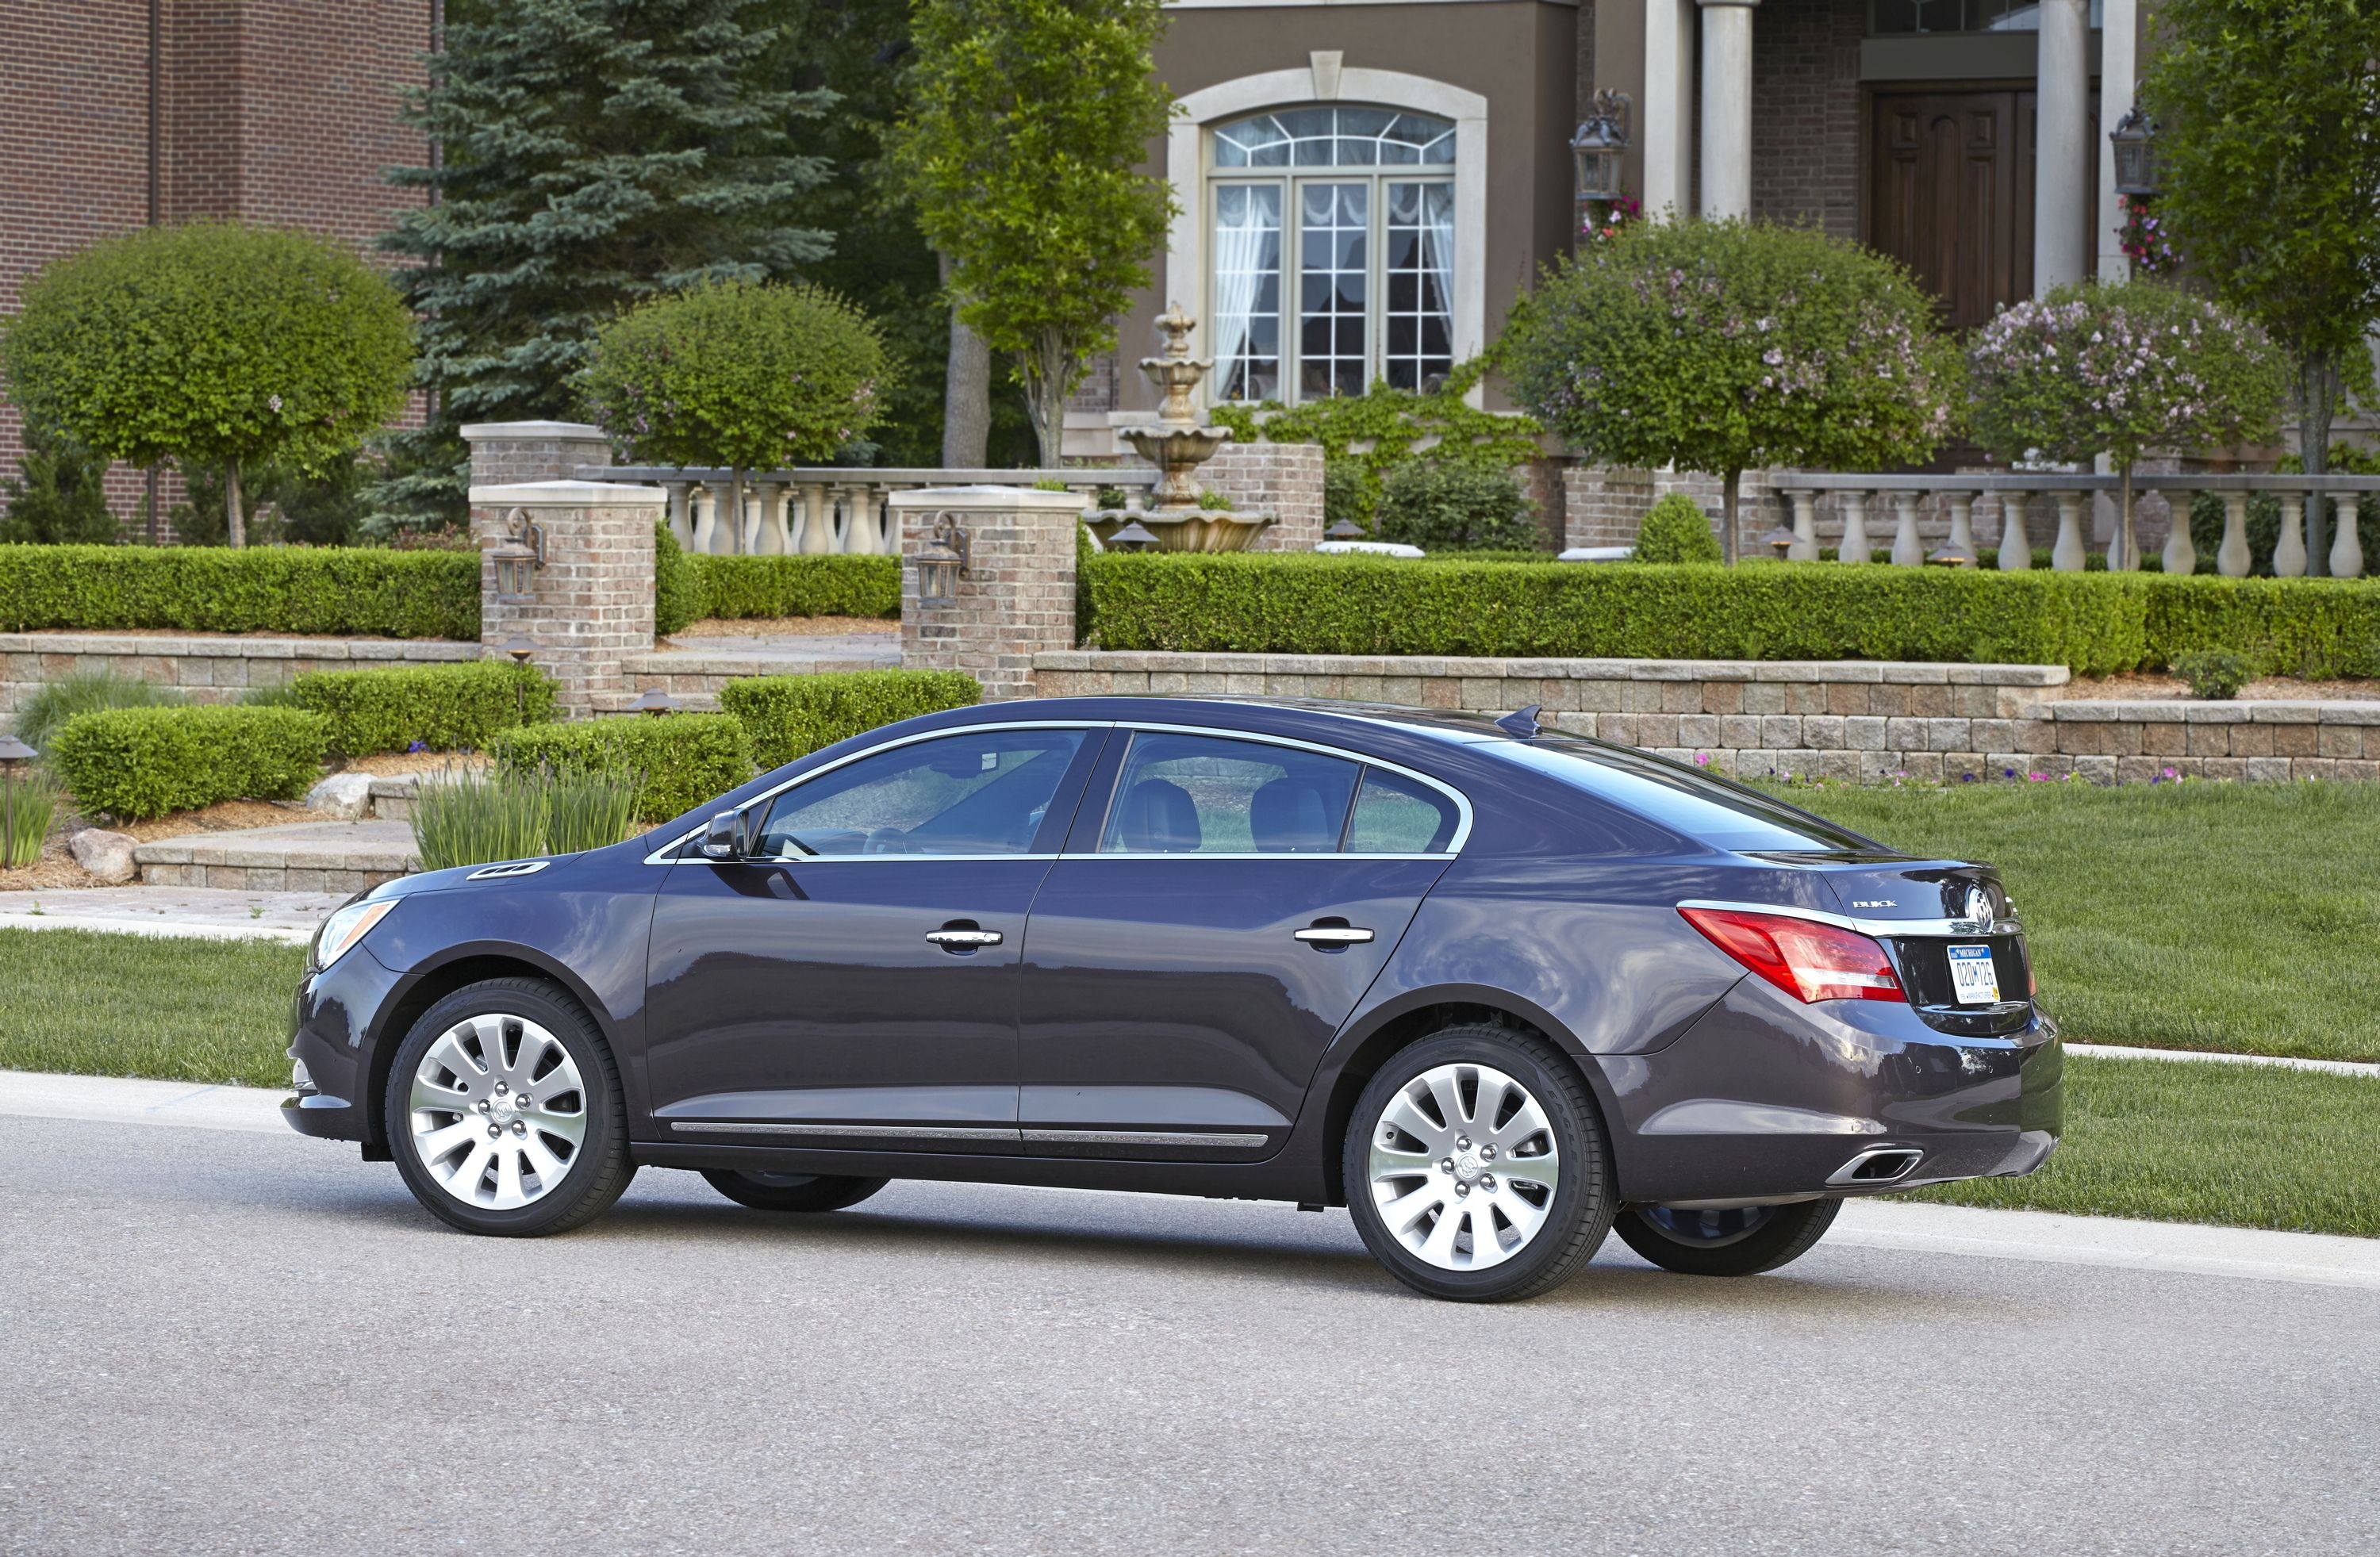 Pin By Patriot Buick Gmc On 2014 Buick Lacrosse Buick Lacrosse Buick Sedan Cars